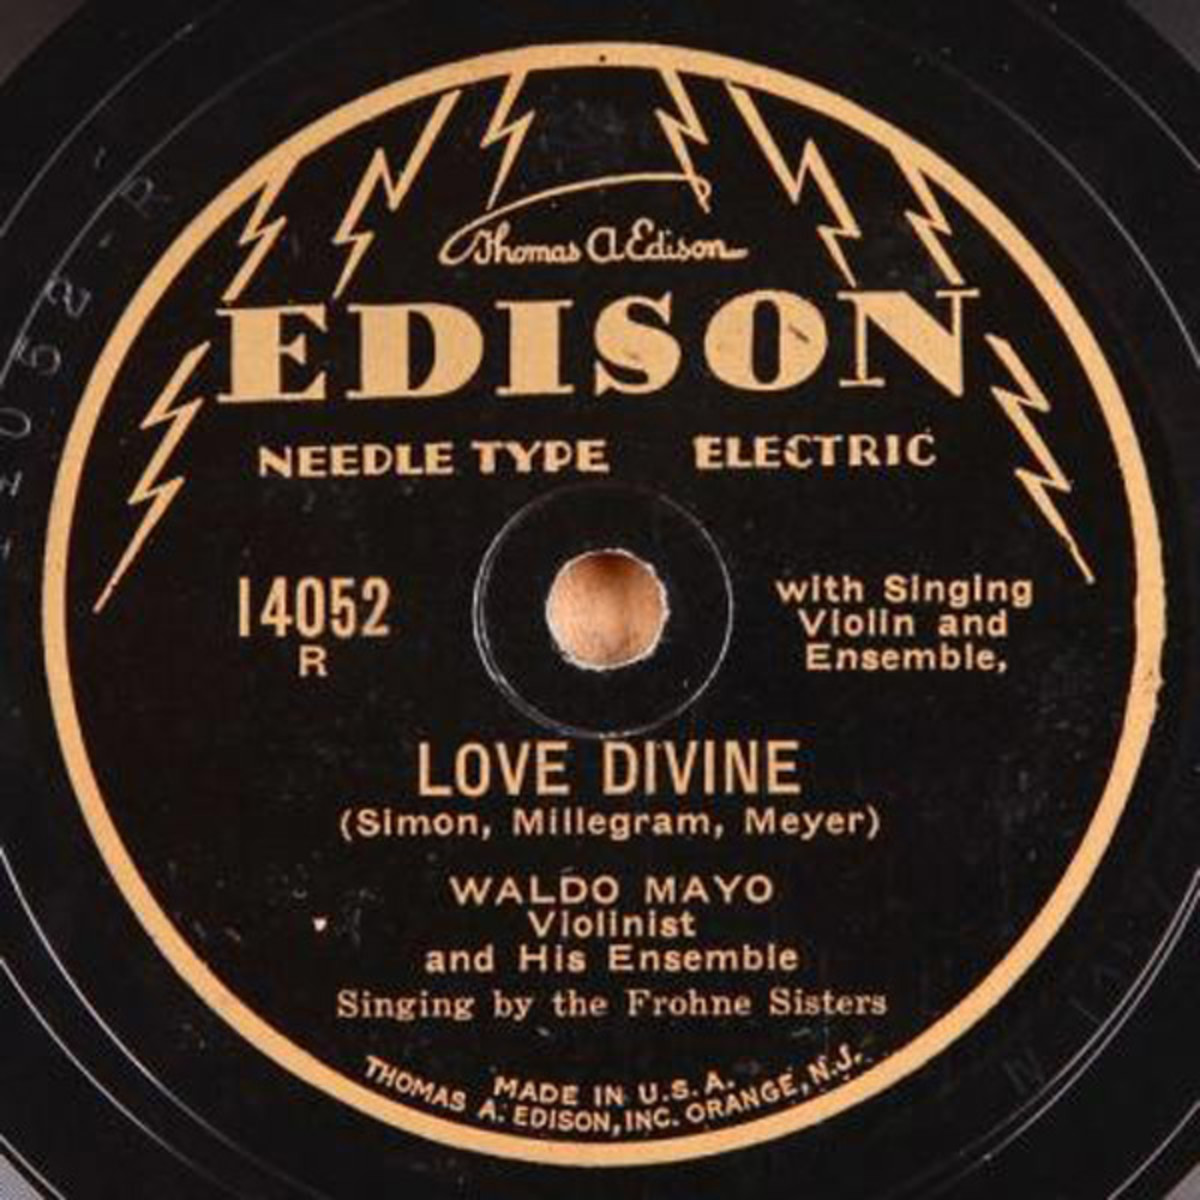 The Frohne Sisters sang backup to Waldo Mayo for this 78 RPM Thomas Edison label